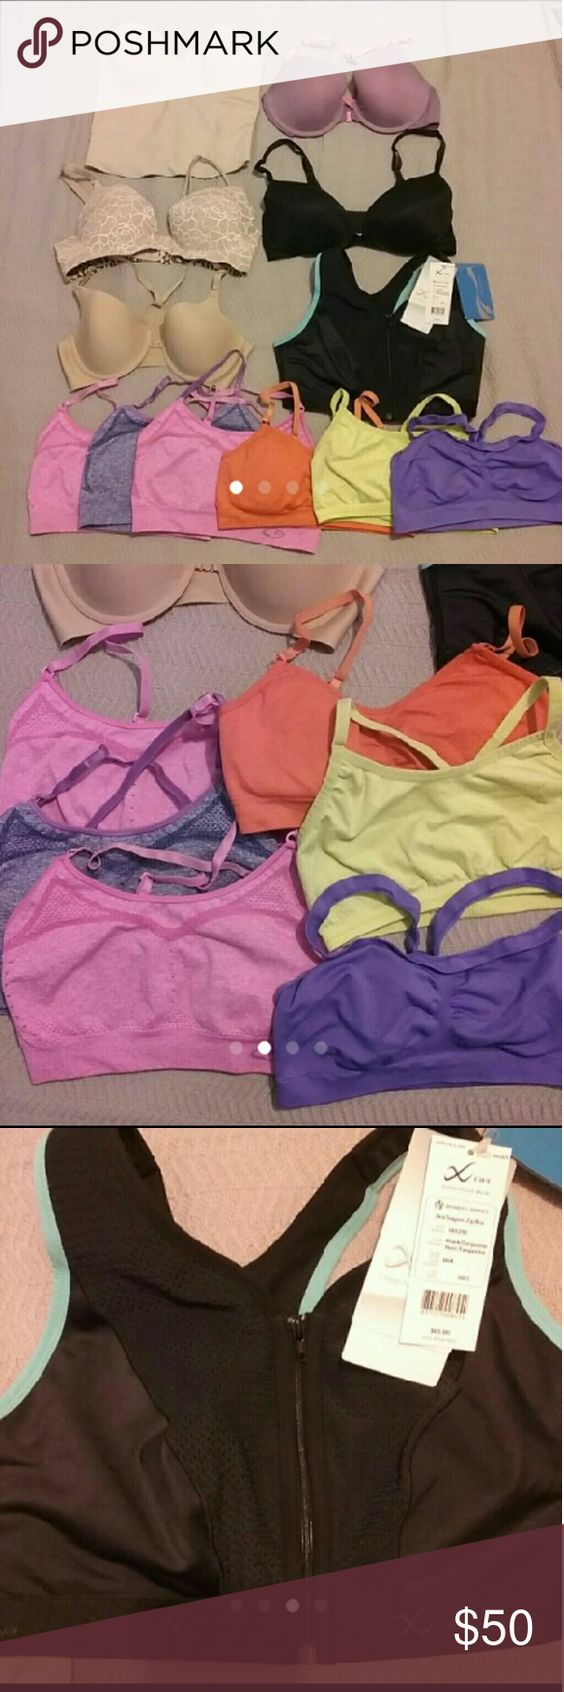 Bra Bundle All are 36C Good used condition No rips or stains Includes.... 6 Sports Bras (champion, NB & hanes) NEW ($65) CW-X Sports bra 3 Victoria's Secret Bras 1 Sweet Nothing bra (nude) 1 Apostrophe bra corset Intimates & Sleepwear Bras